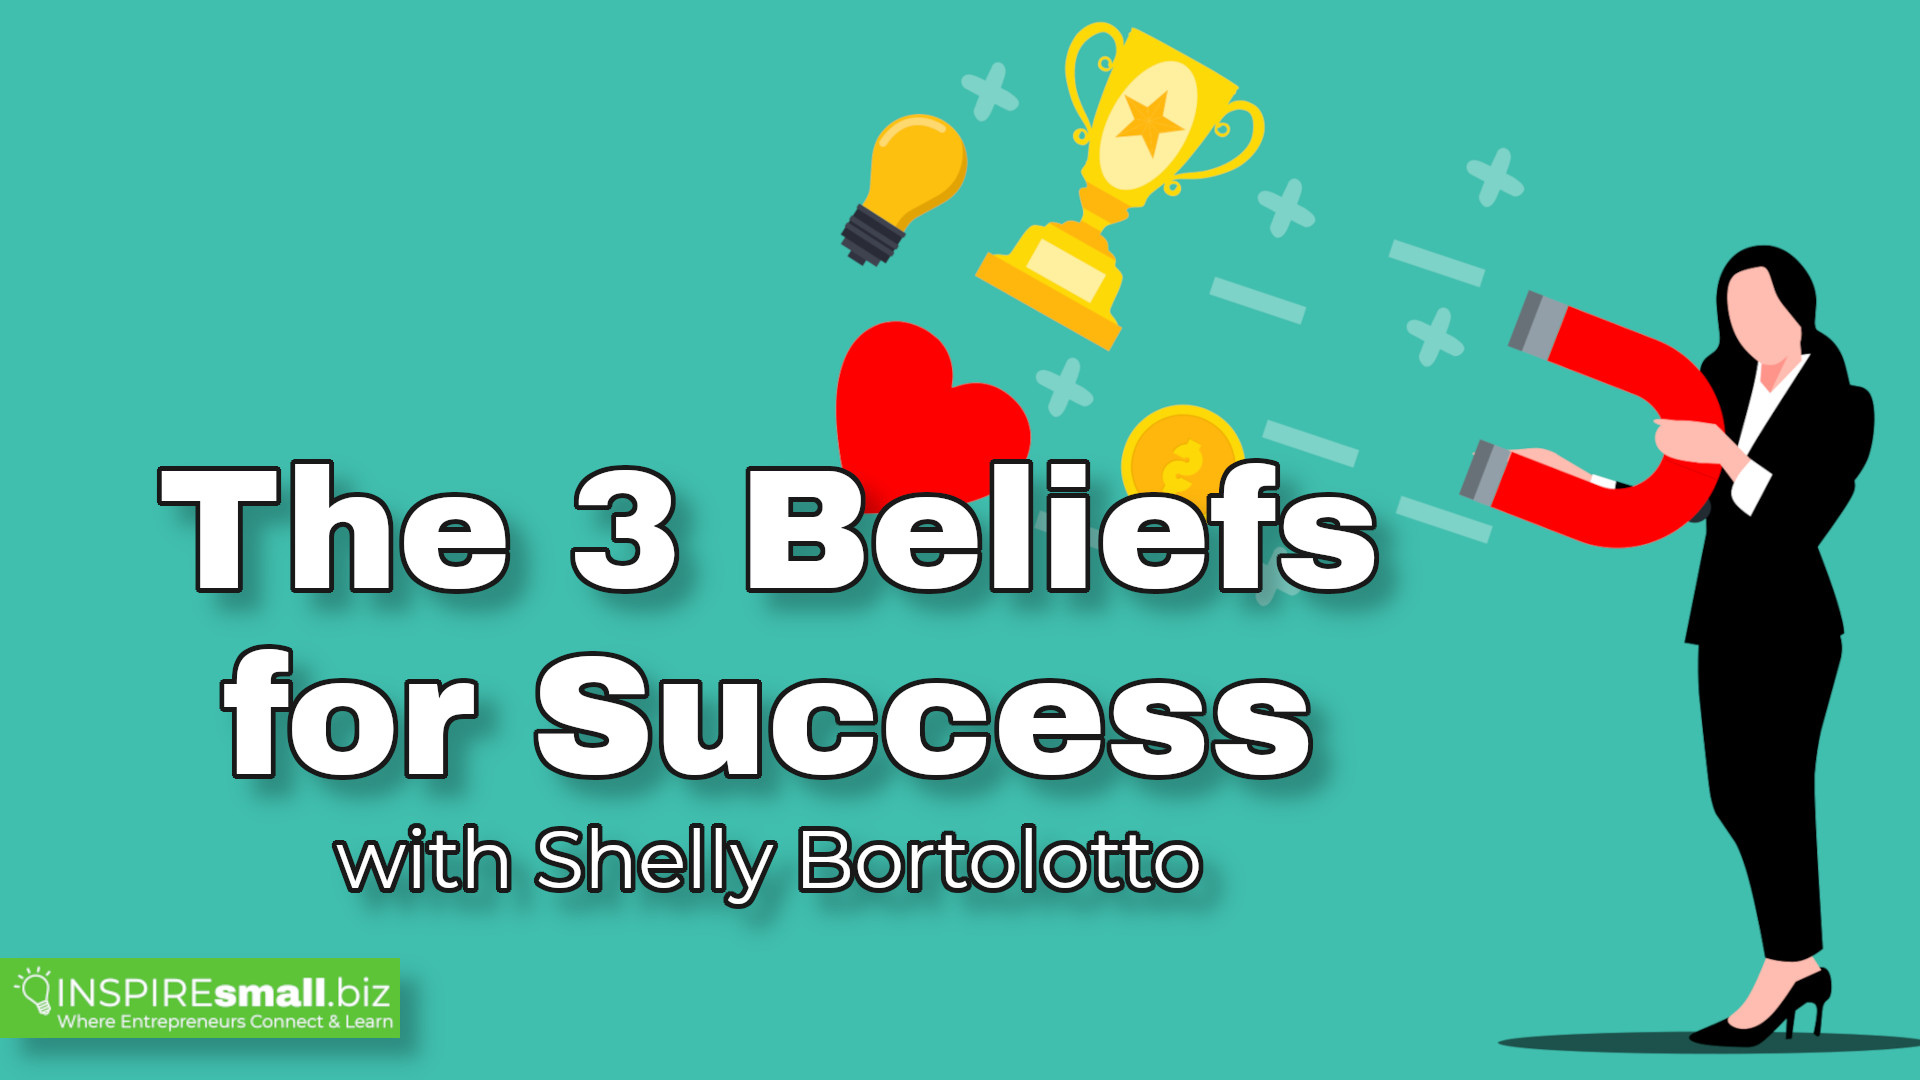 The 3 Beliefs for Success - INSPIREsmall.biz Keystone Business Connections